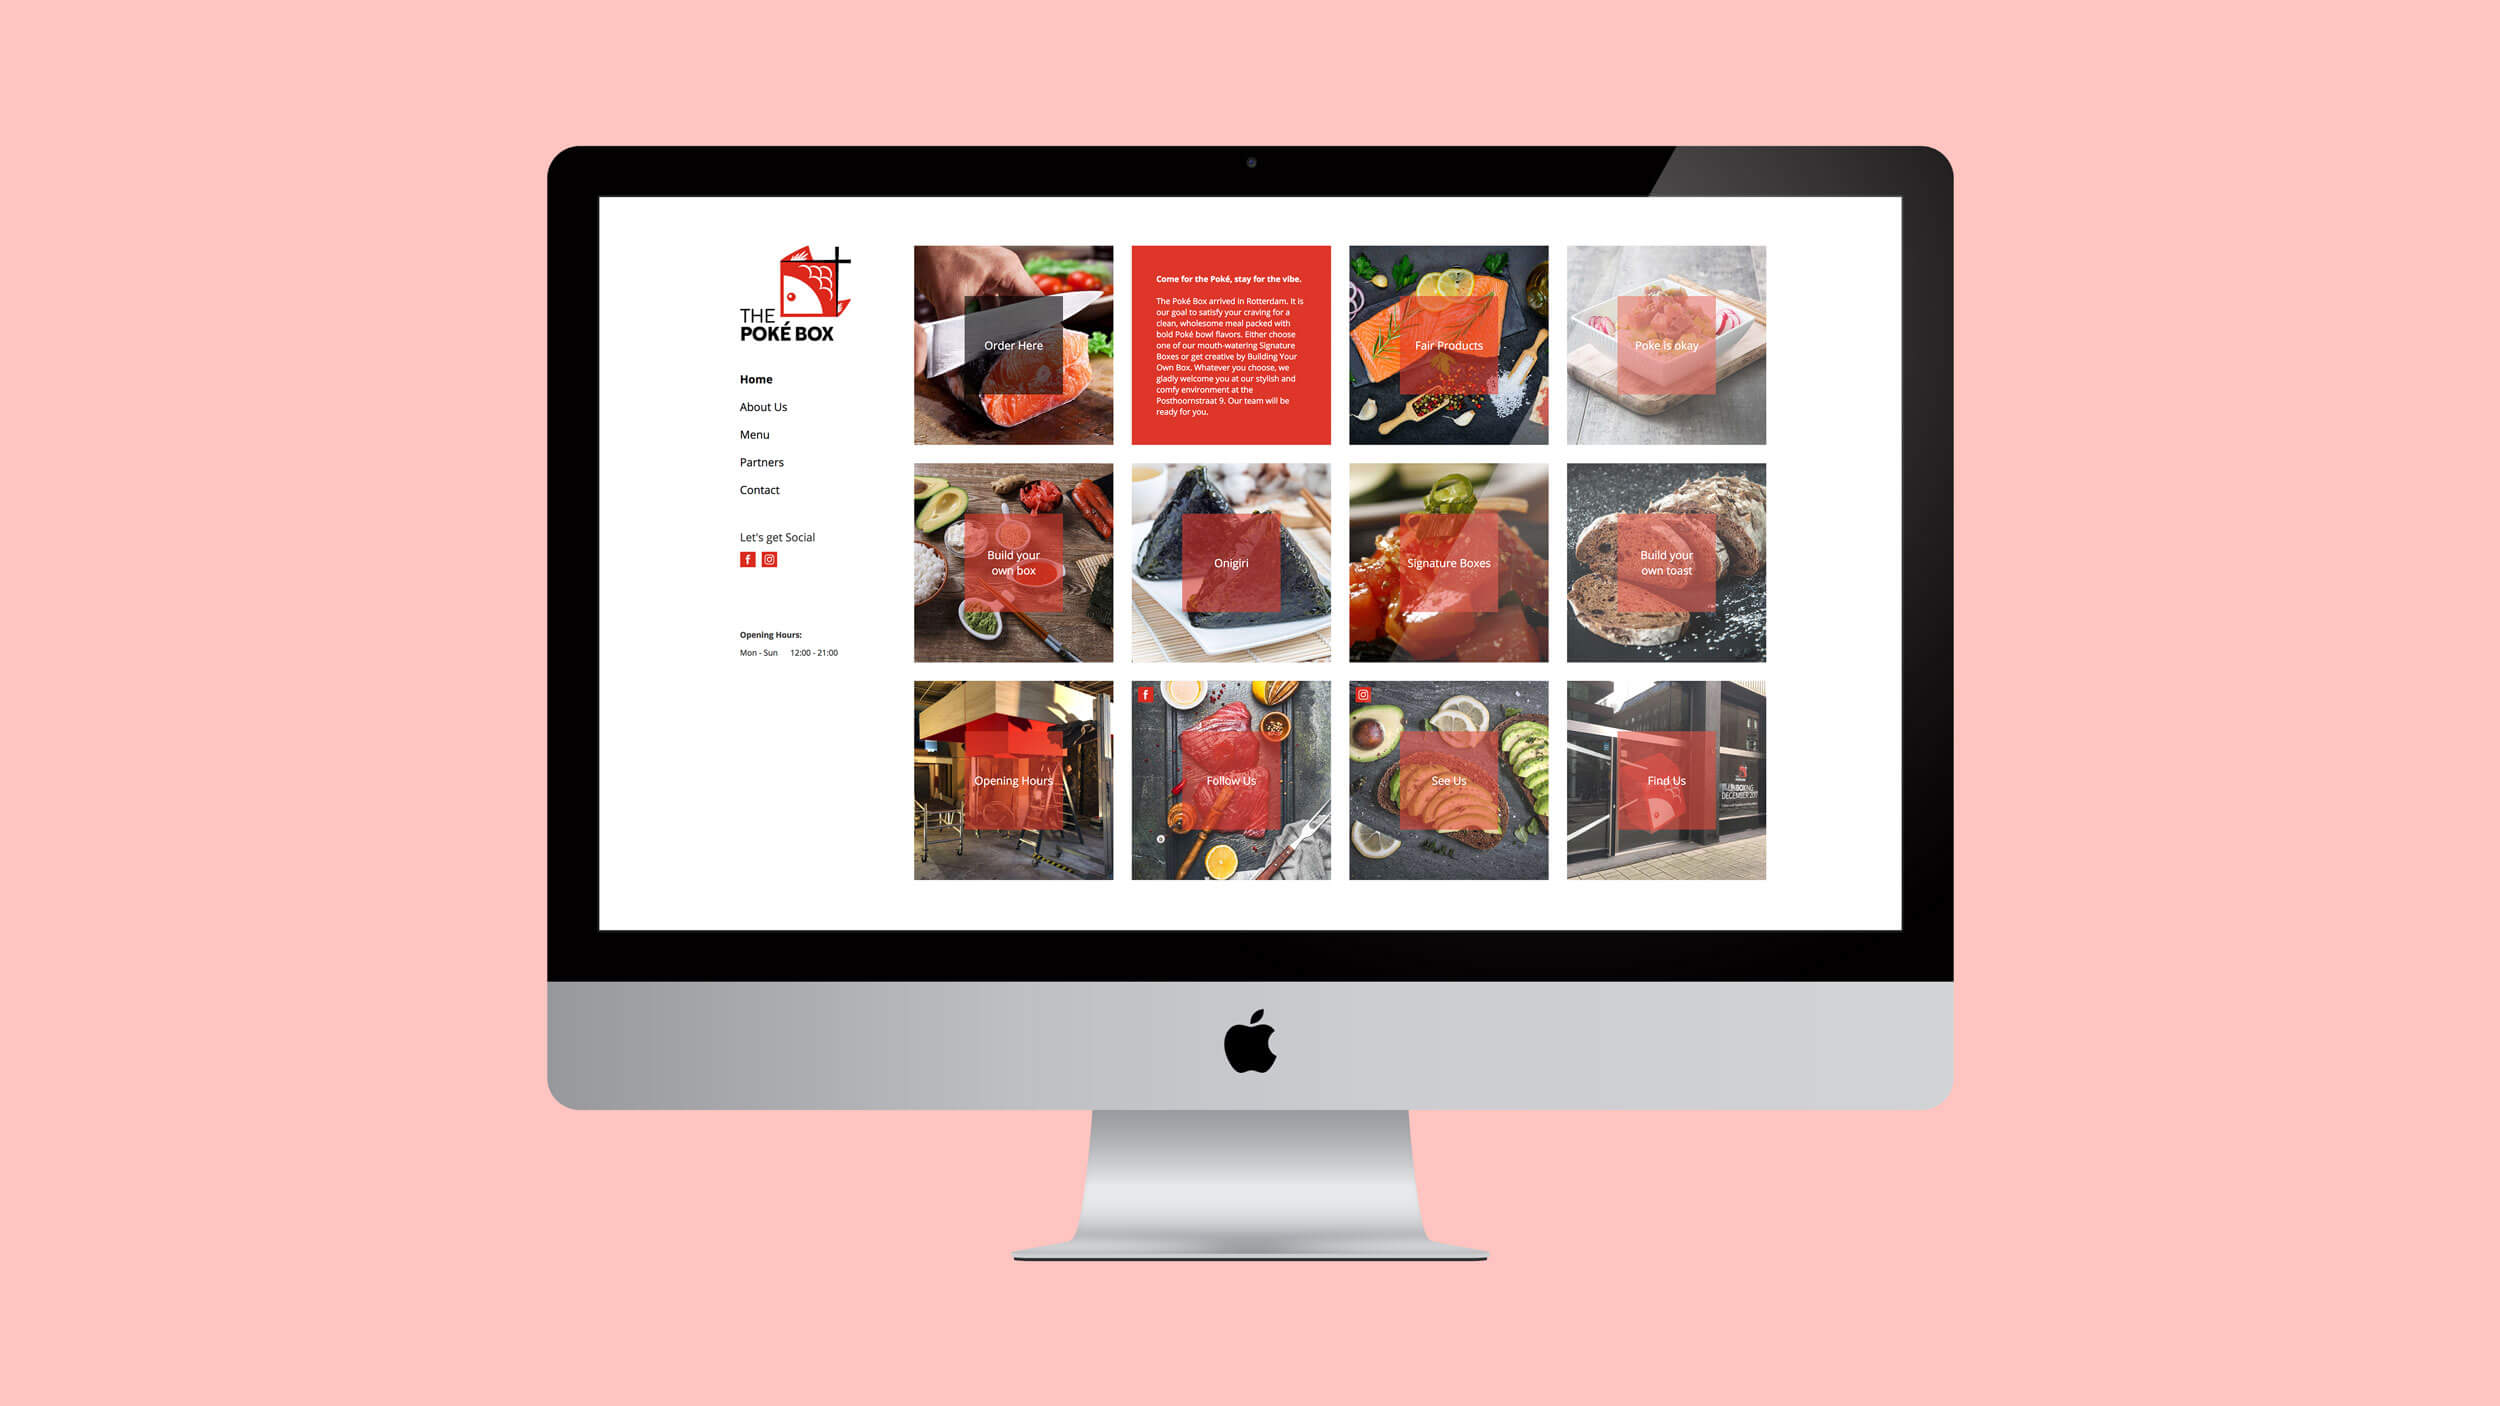 The Poké Box, website, Mixus studio